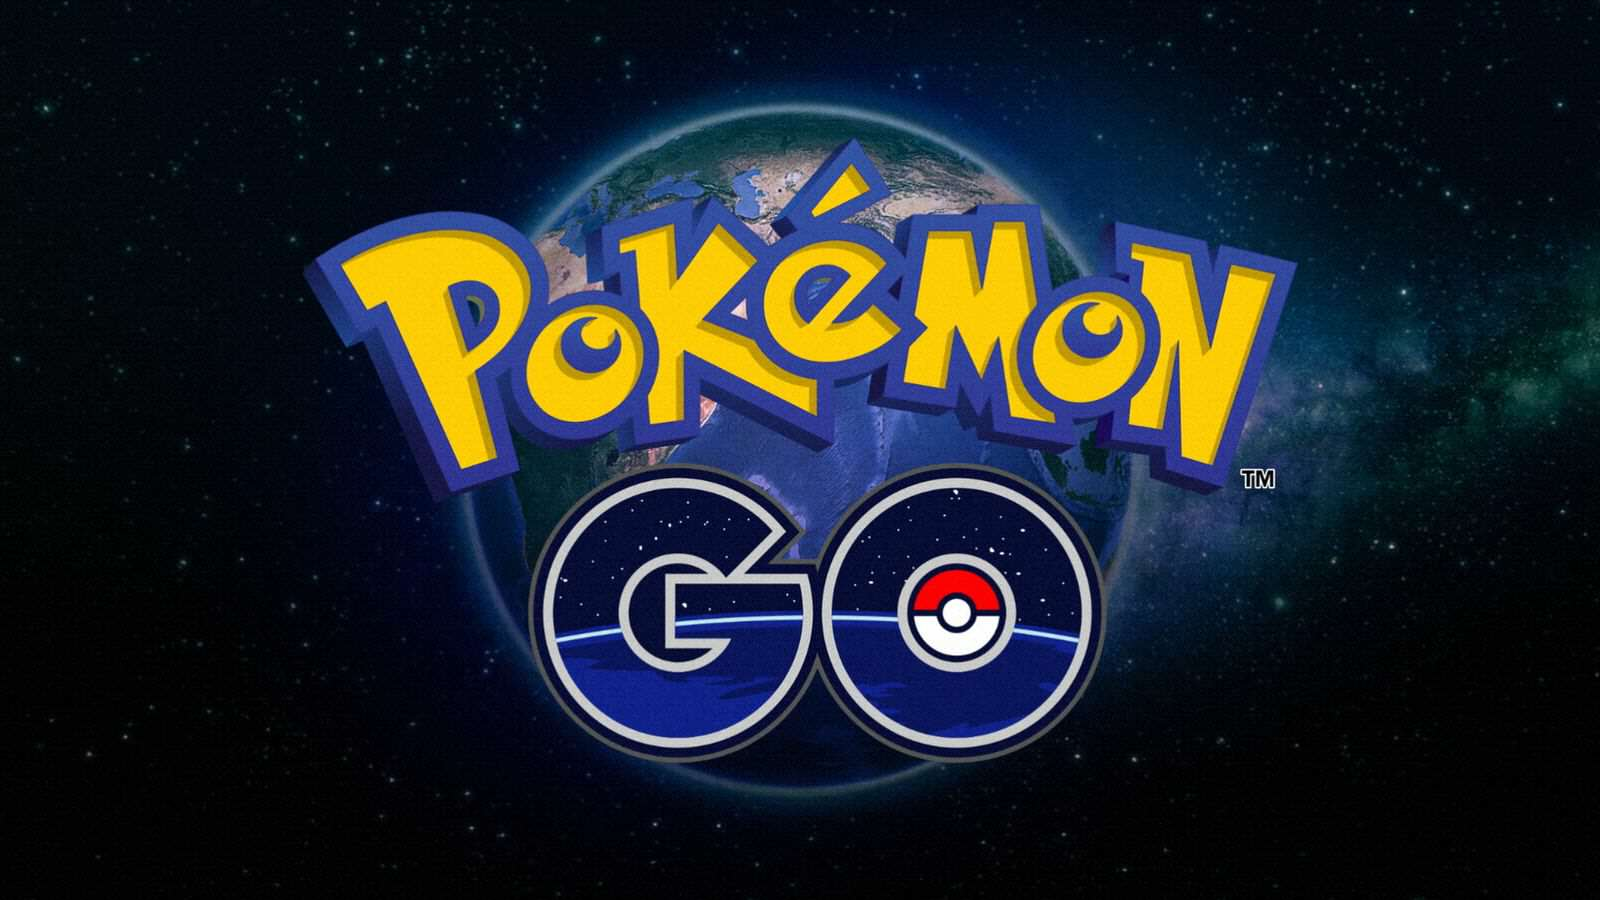 Pokemon GO Devs Working To Bring Back Key Feature, With Big Changes pokemon go logo